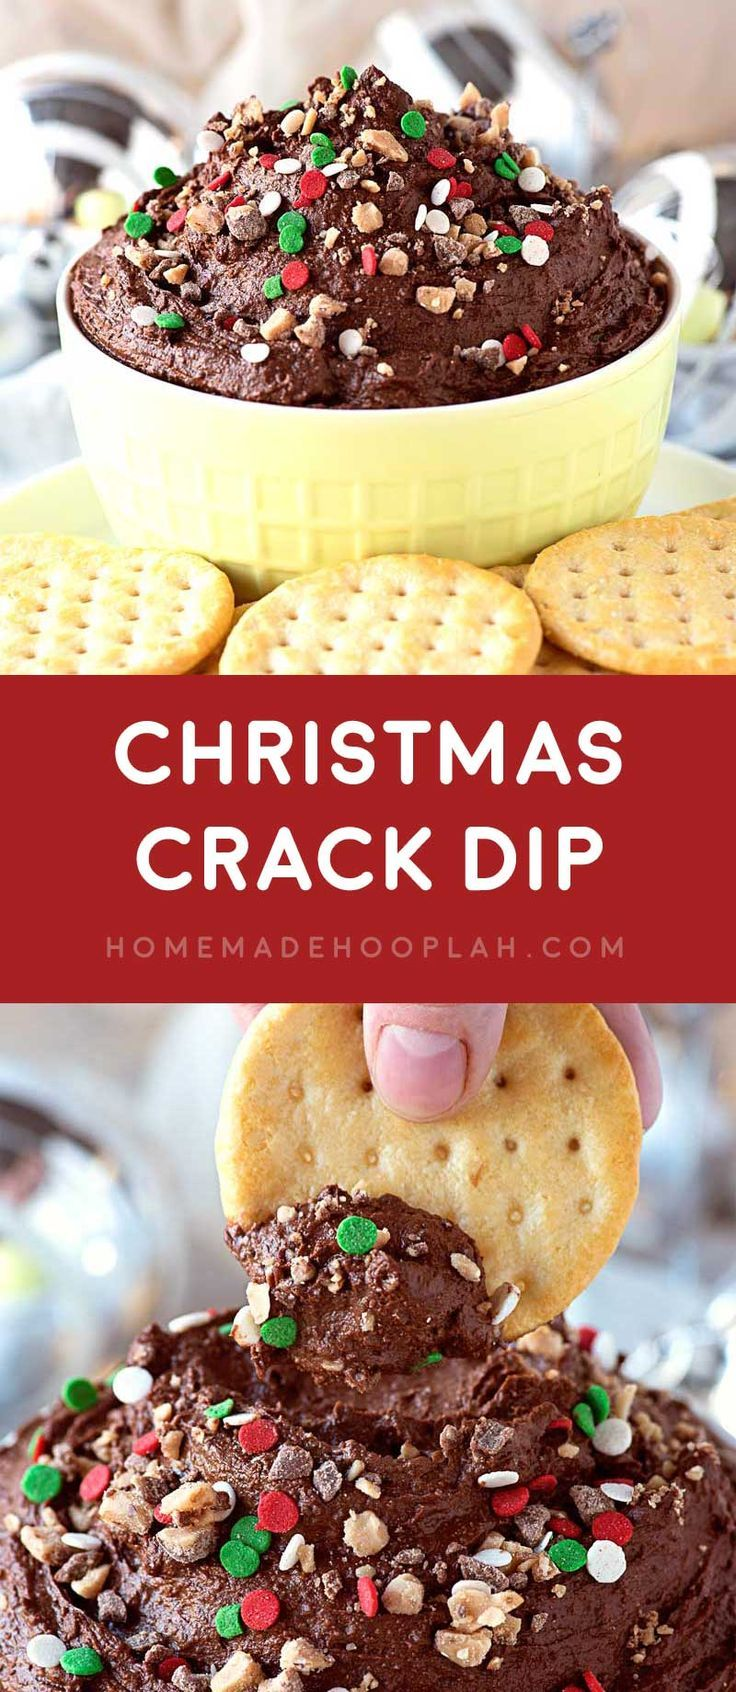 Christmas Crack Dip! A festive dip that's perfect for saltine toffee lovers! Ultra creamy chocolate with Heath toffee bits and dipped with your favorite salty crackers.   HomemadeHooplah.com